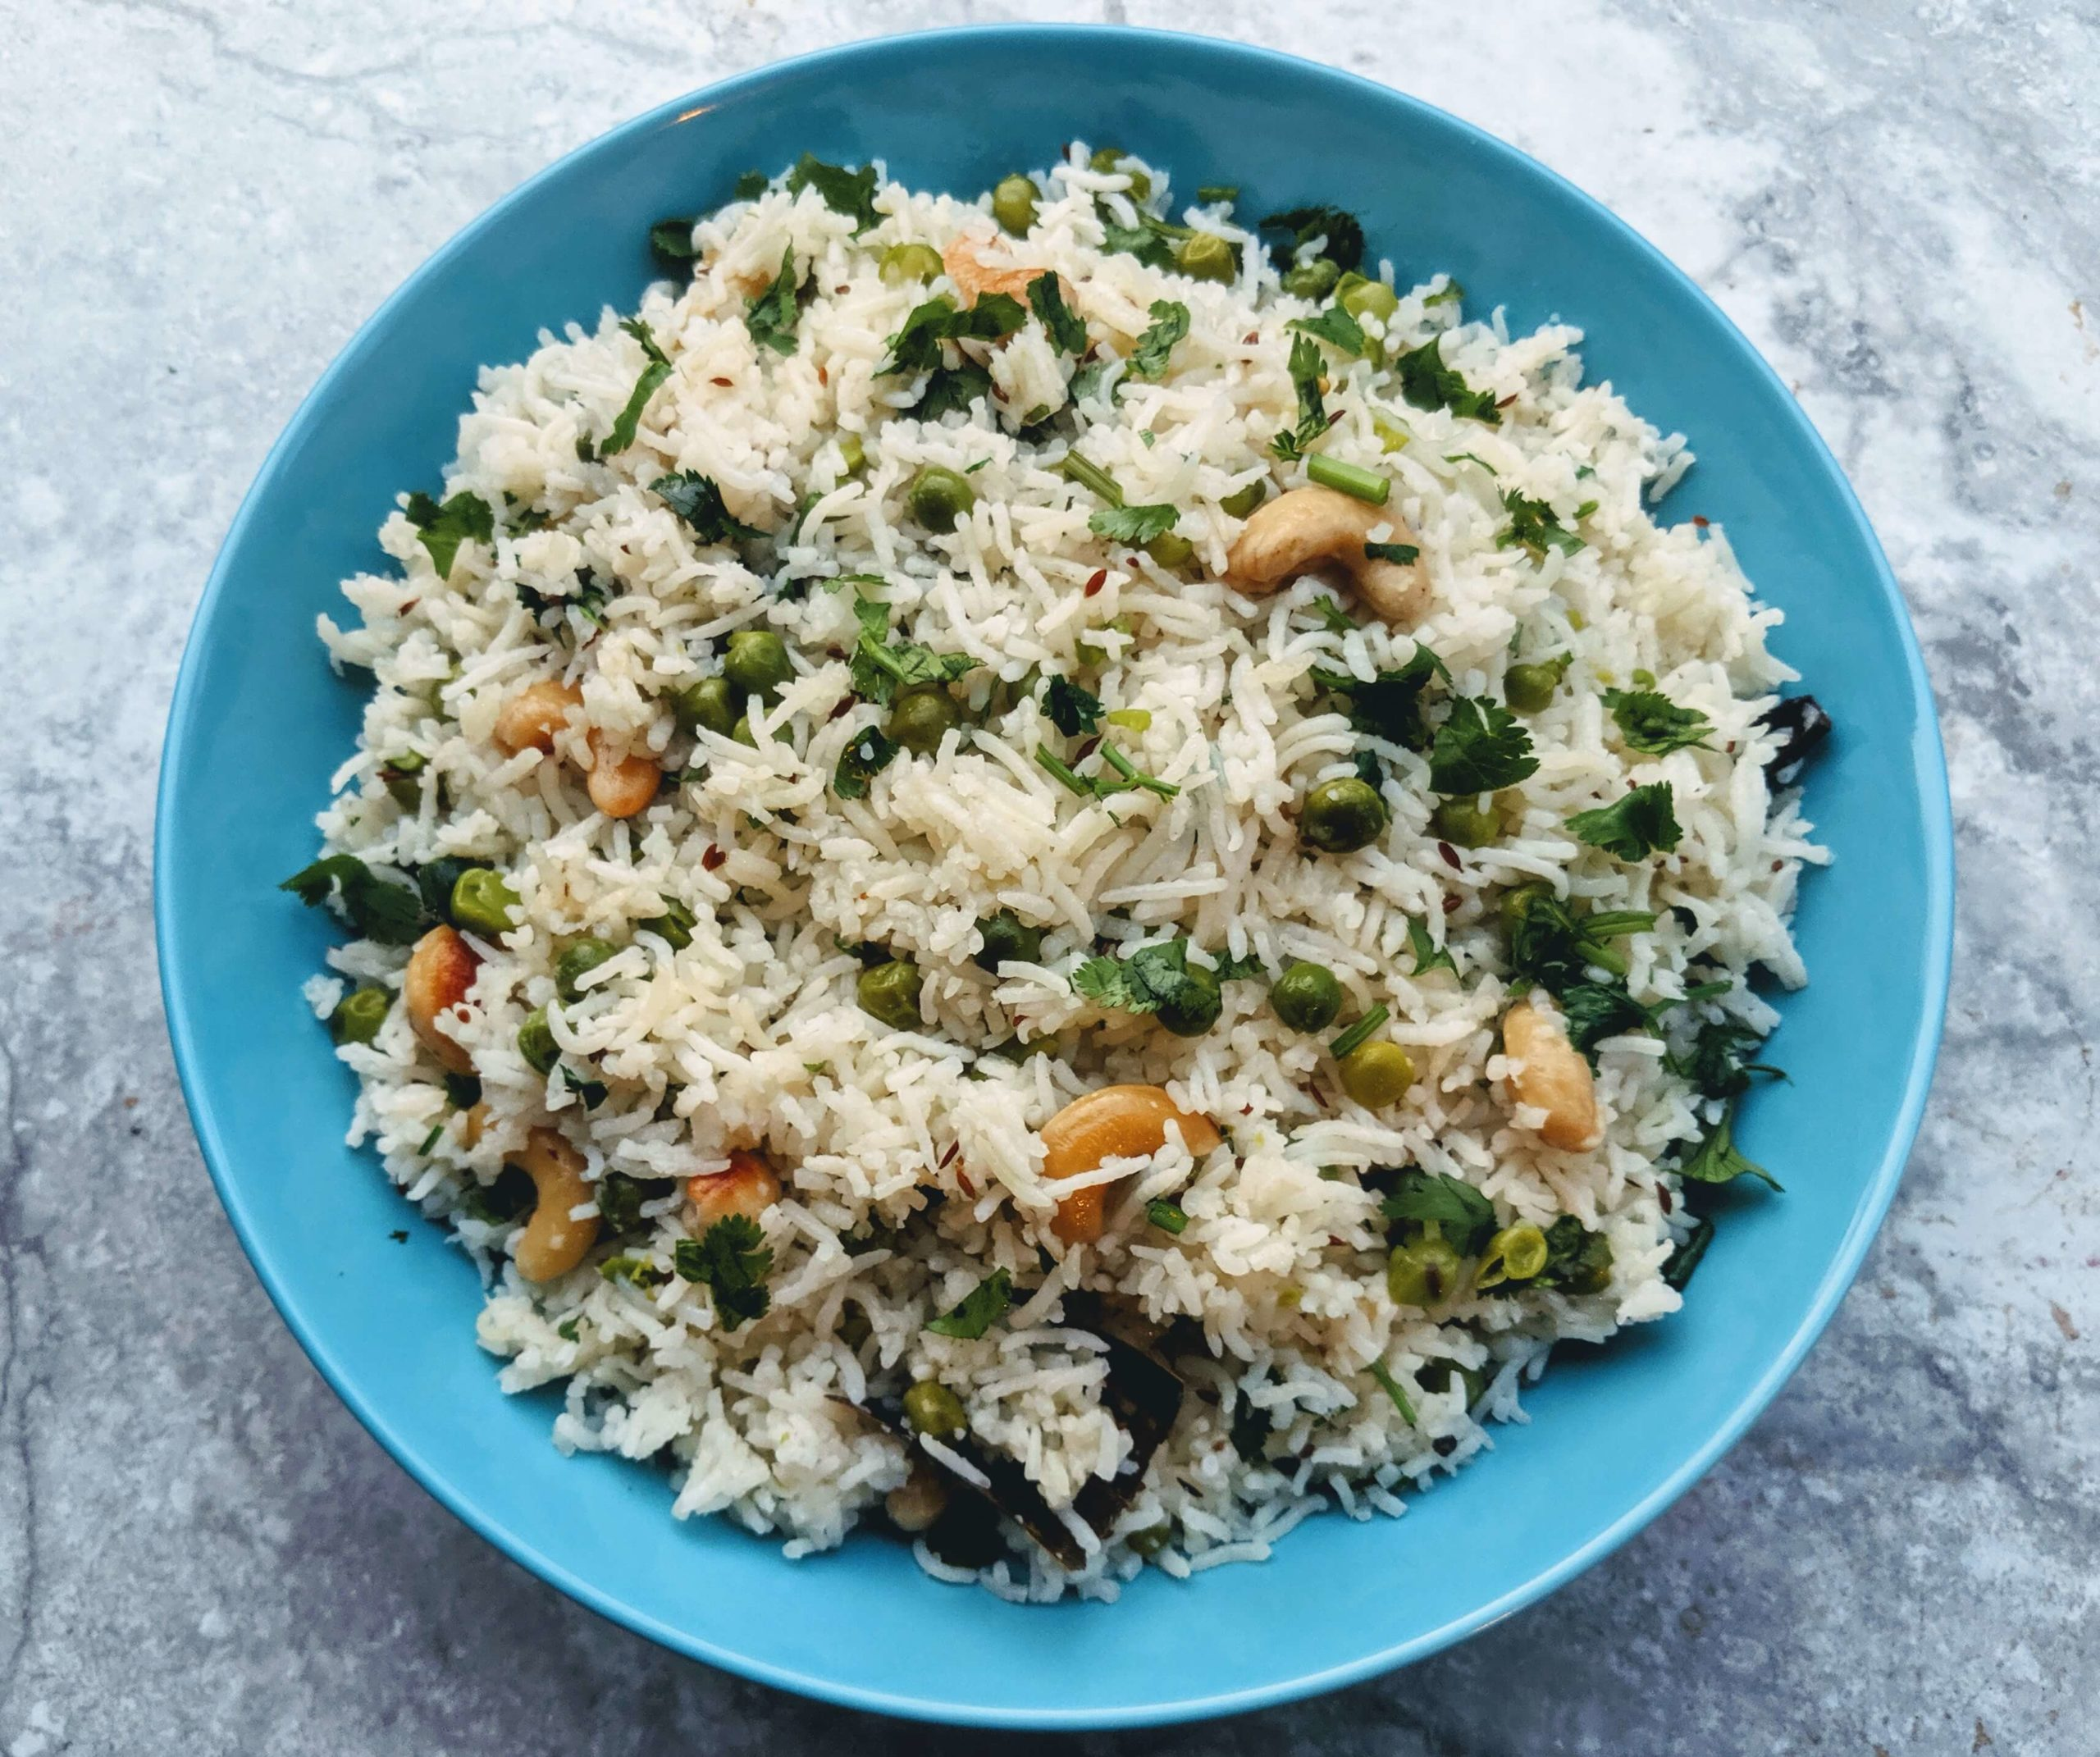 Peas Pulao or Matar Pulao is a flavorful one-pot Indian rice dish made with fresh peas & rice cooked along with various aromatic spices.